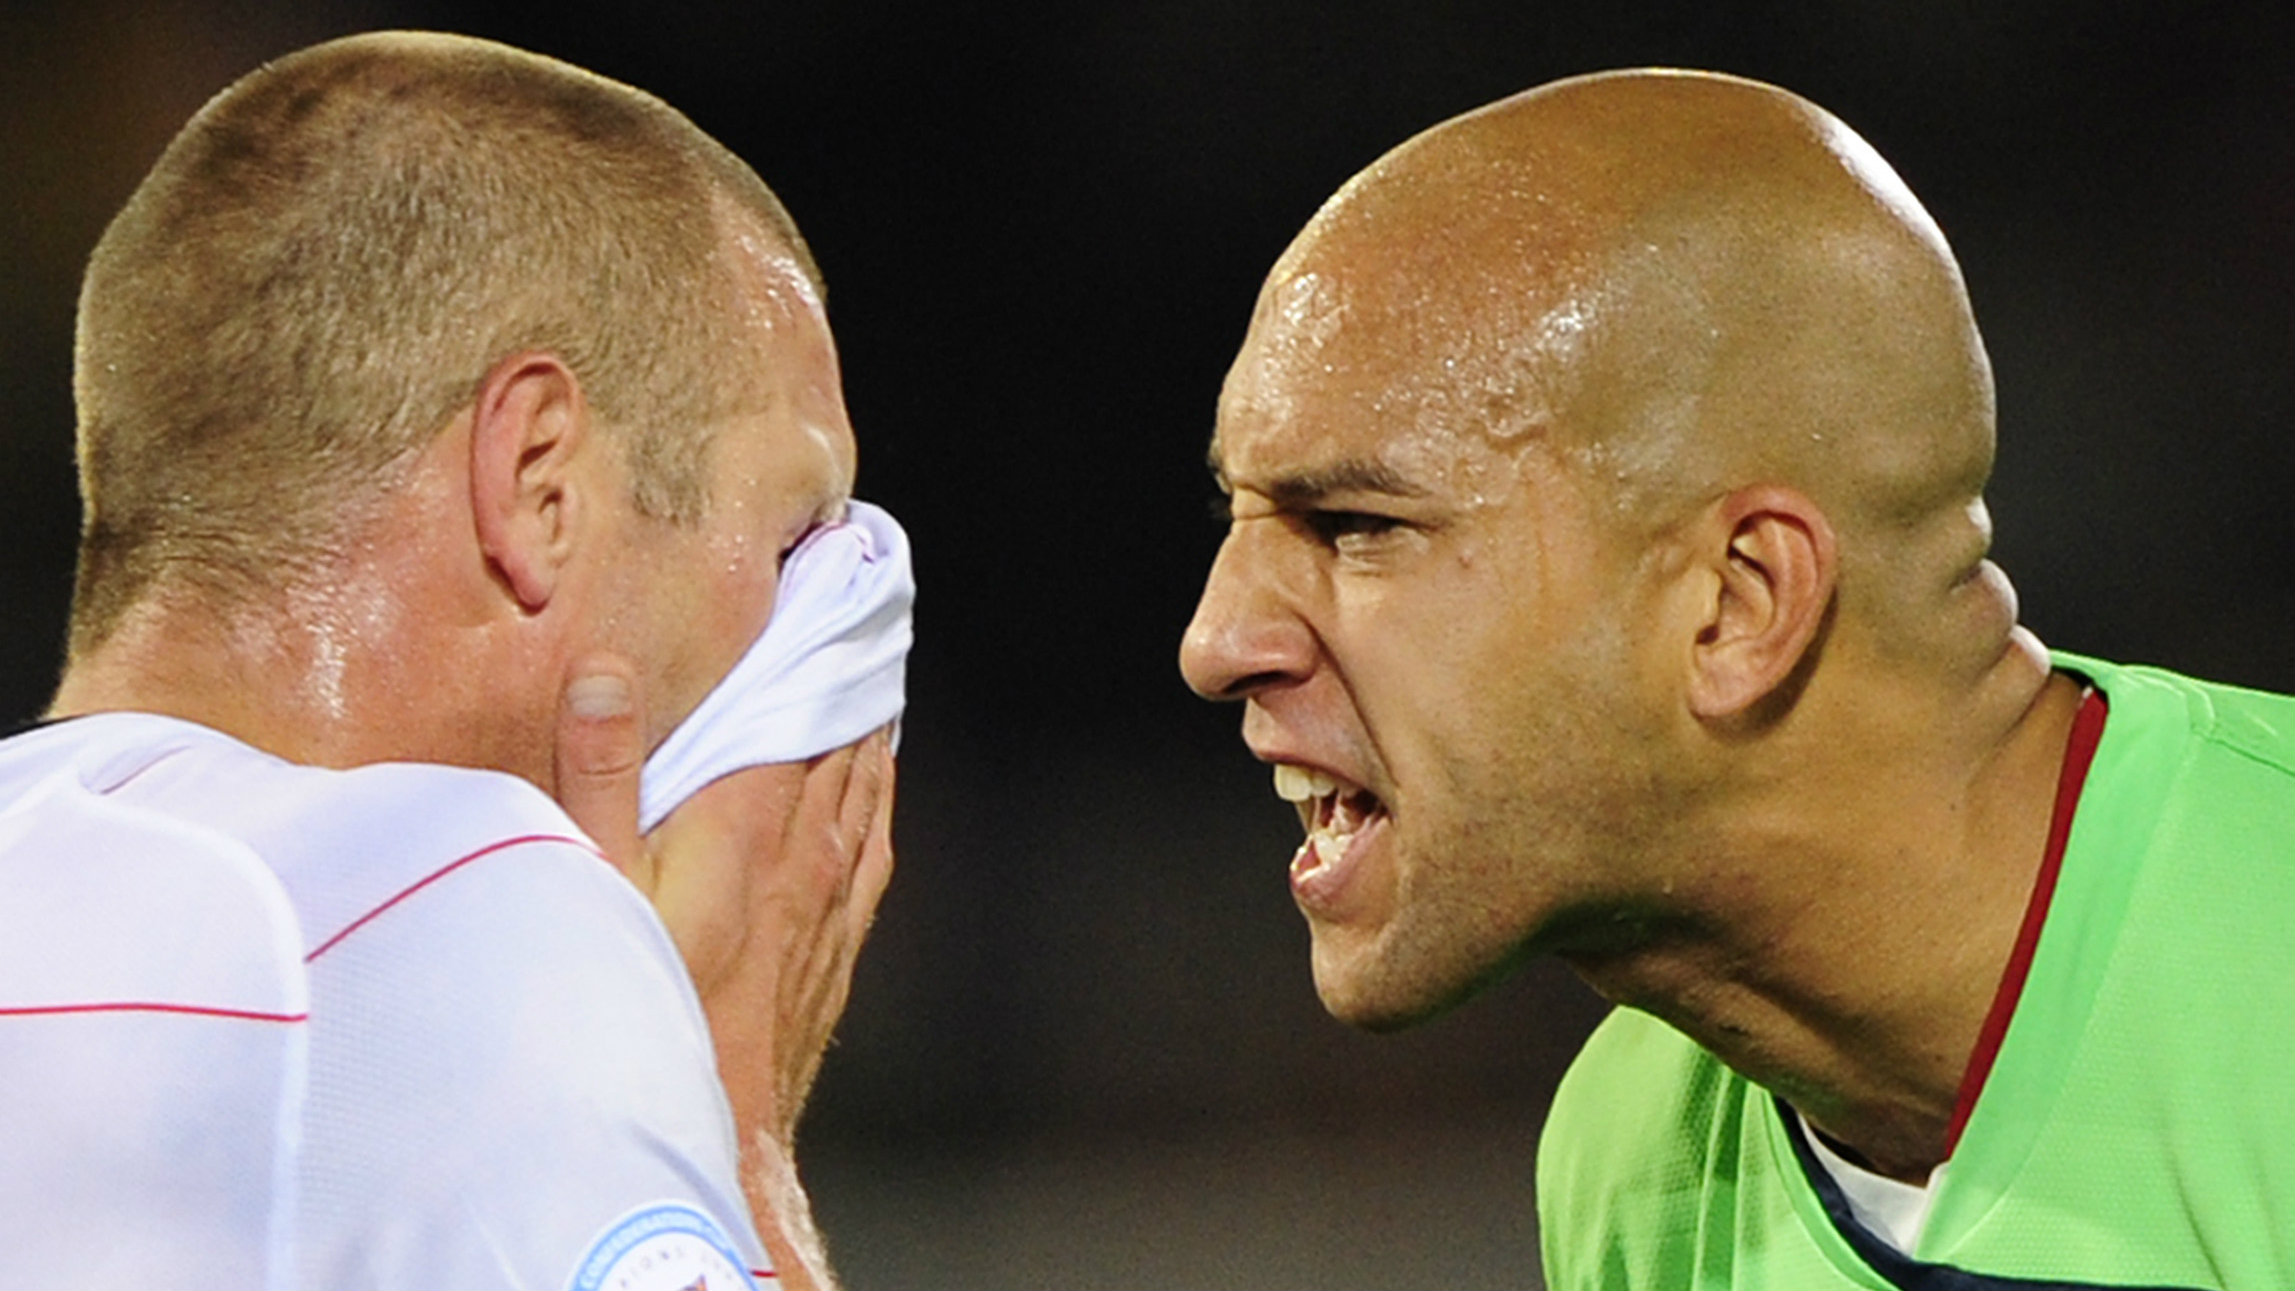 Goalkeeper Tim Howard (R) of the U.S shouts at team mate Jay DeMerit after Italy's Giuseppe Rossi scored his team's third goal during their Confederations Cup soccer match at the Loftus Versfeld stadium in Pretoria June 15, 2009.